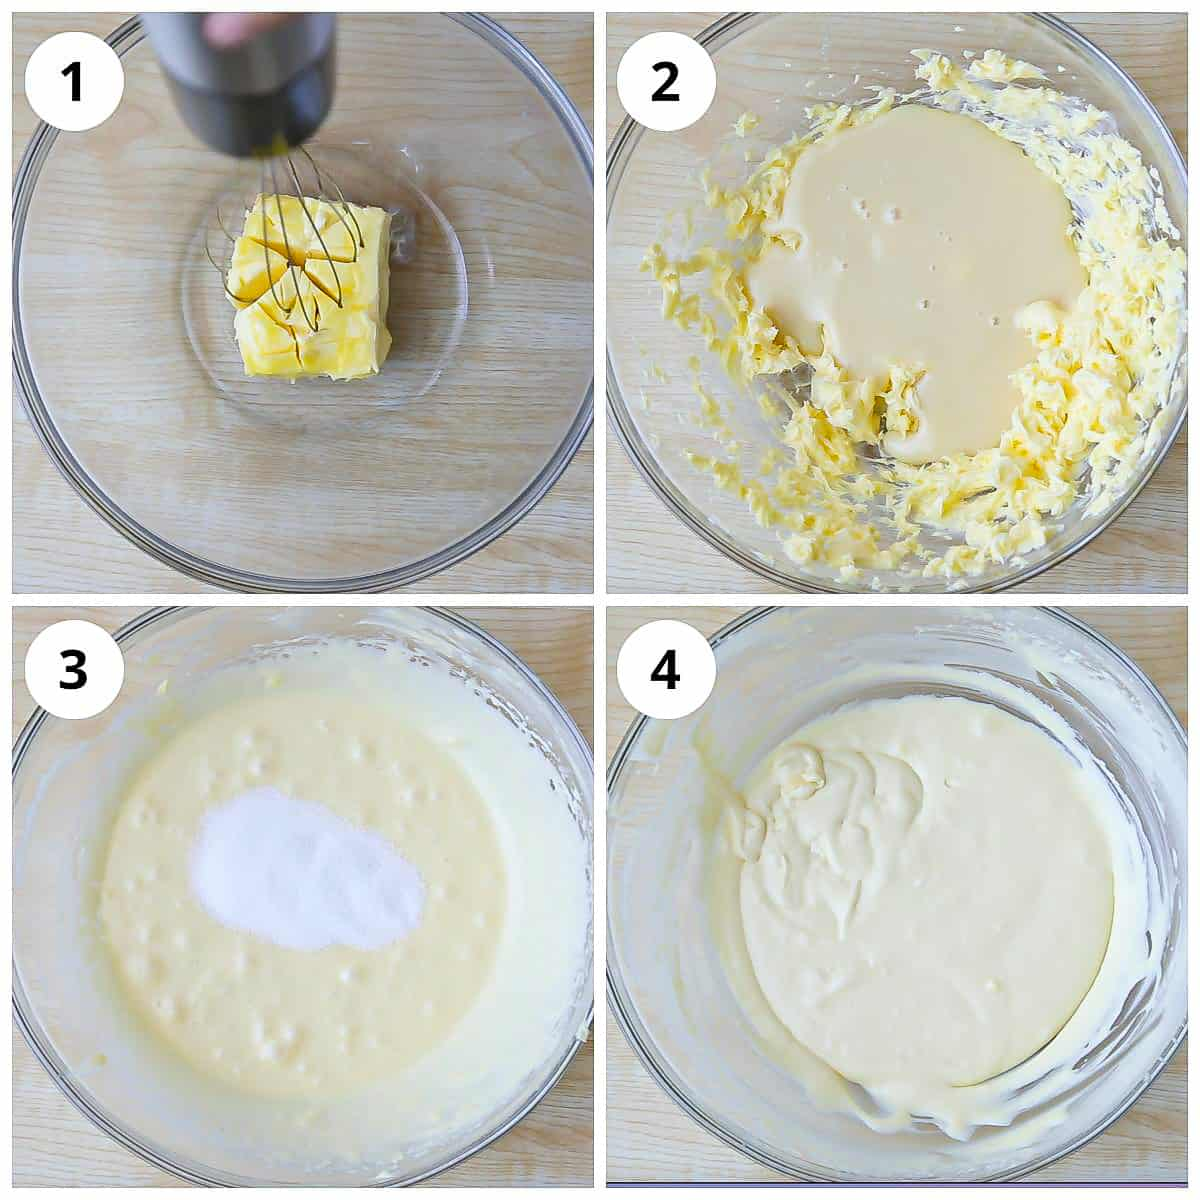 Steps to cream butter, sugar, and condensed milk for eggless vanilla cake